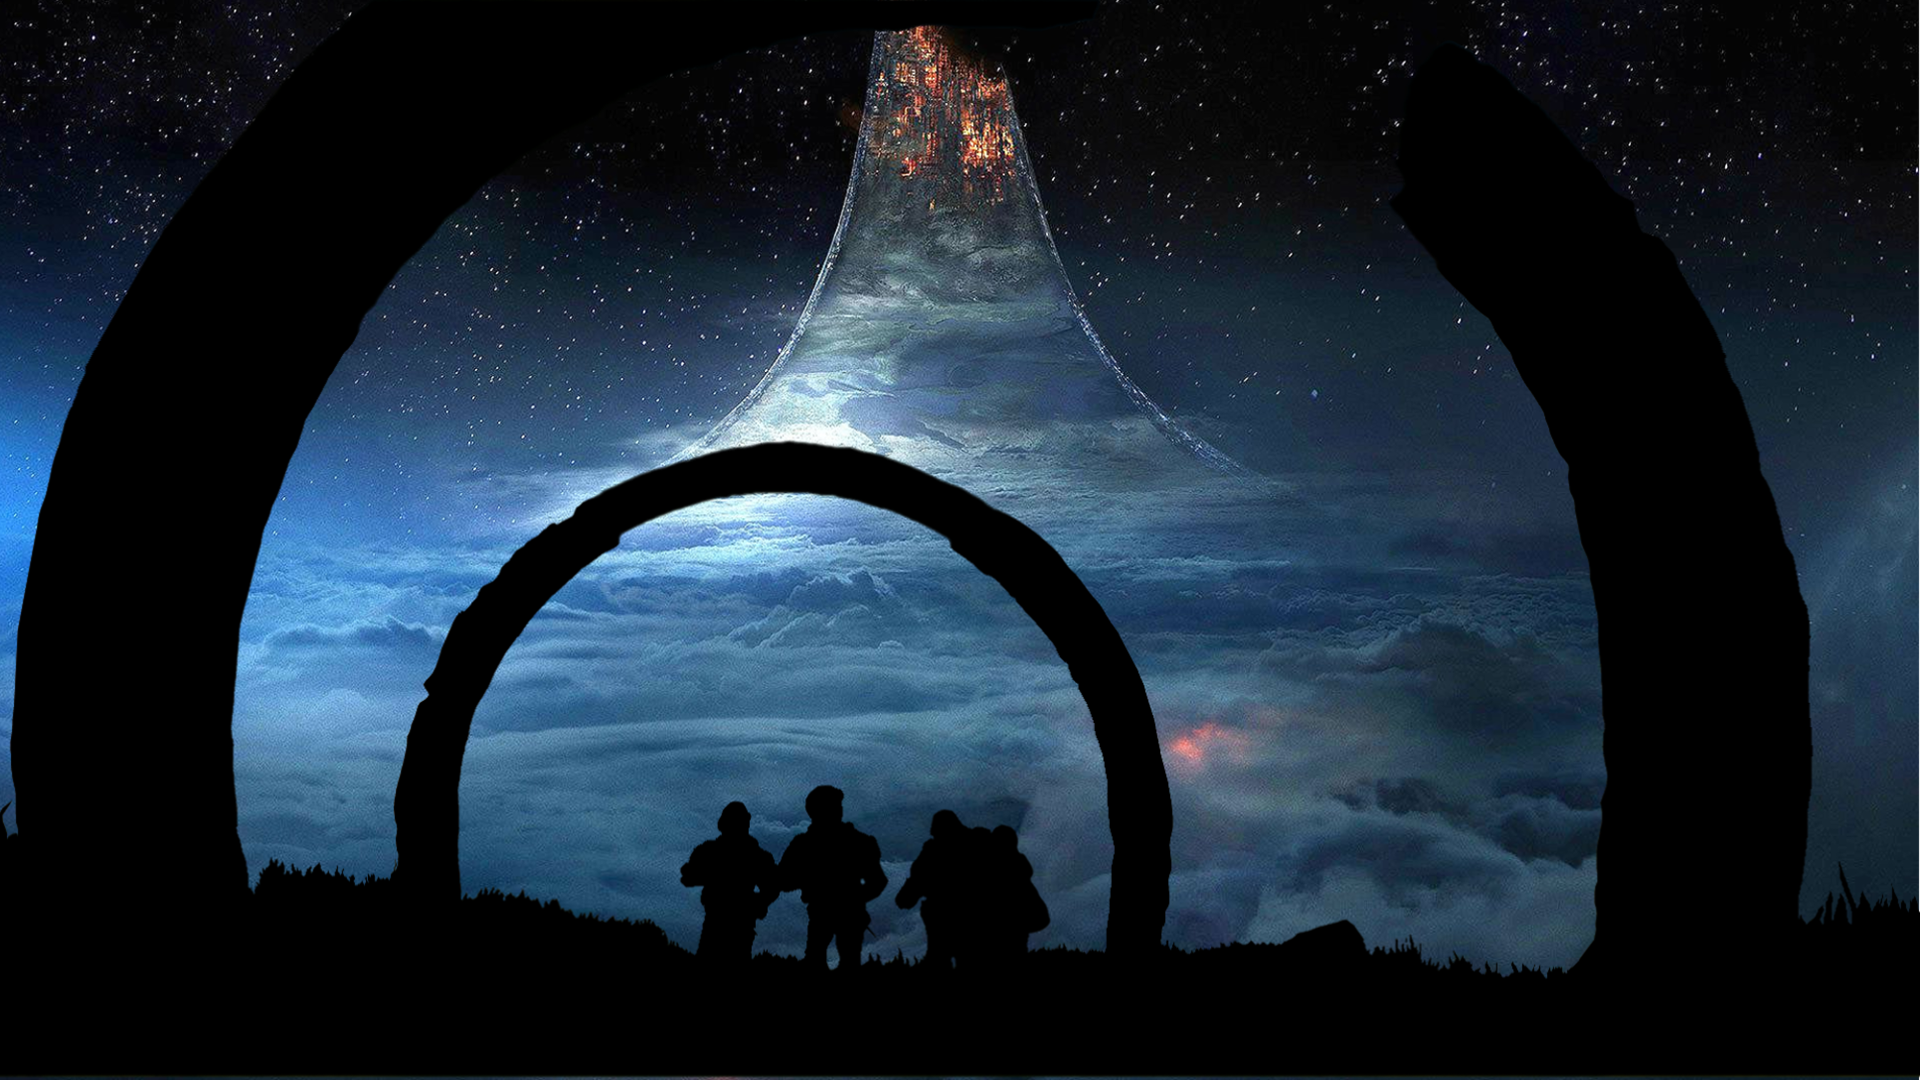 Halo Infinite Marines Wallpaper That I Created Link In Comments Hd Wallpaper Marine Games Game Artwork